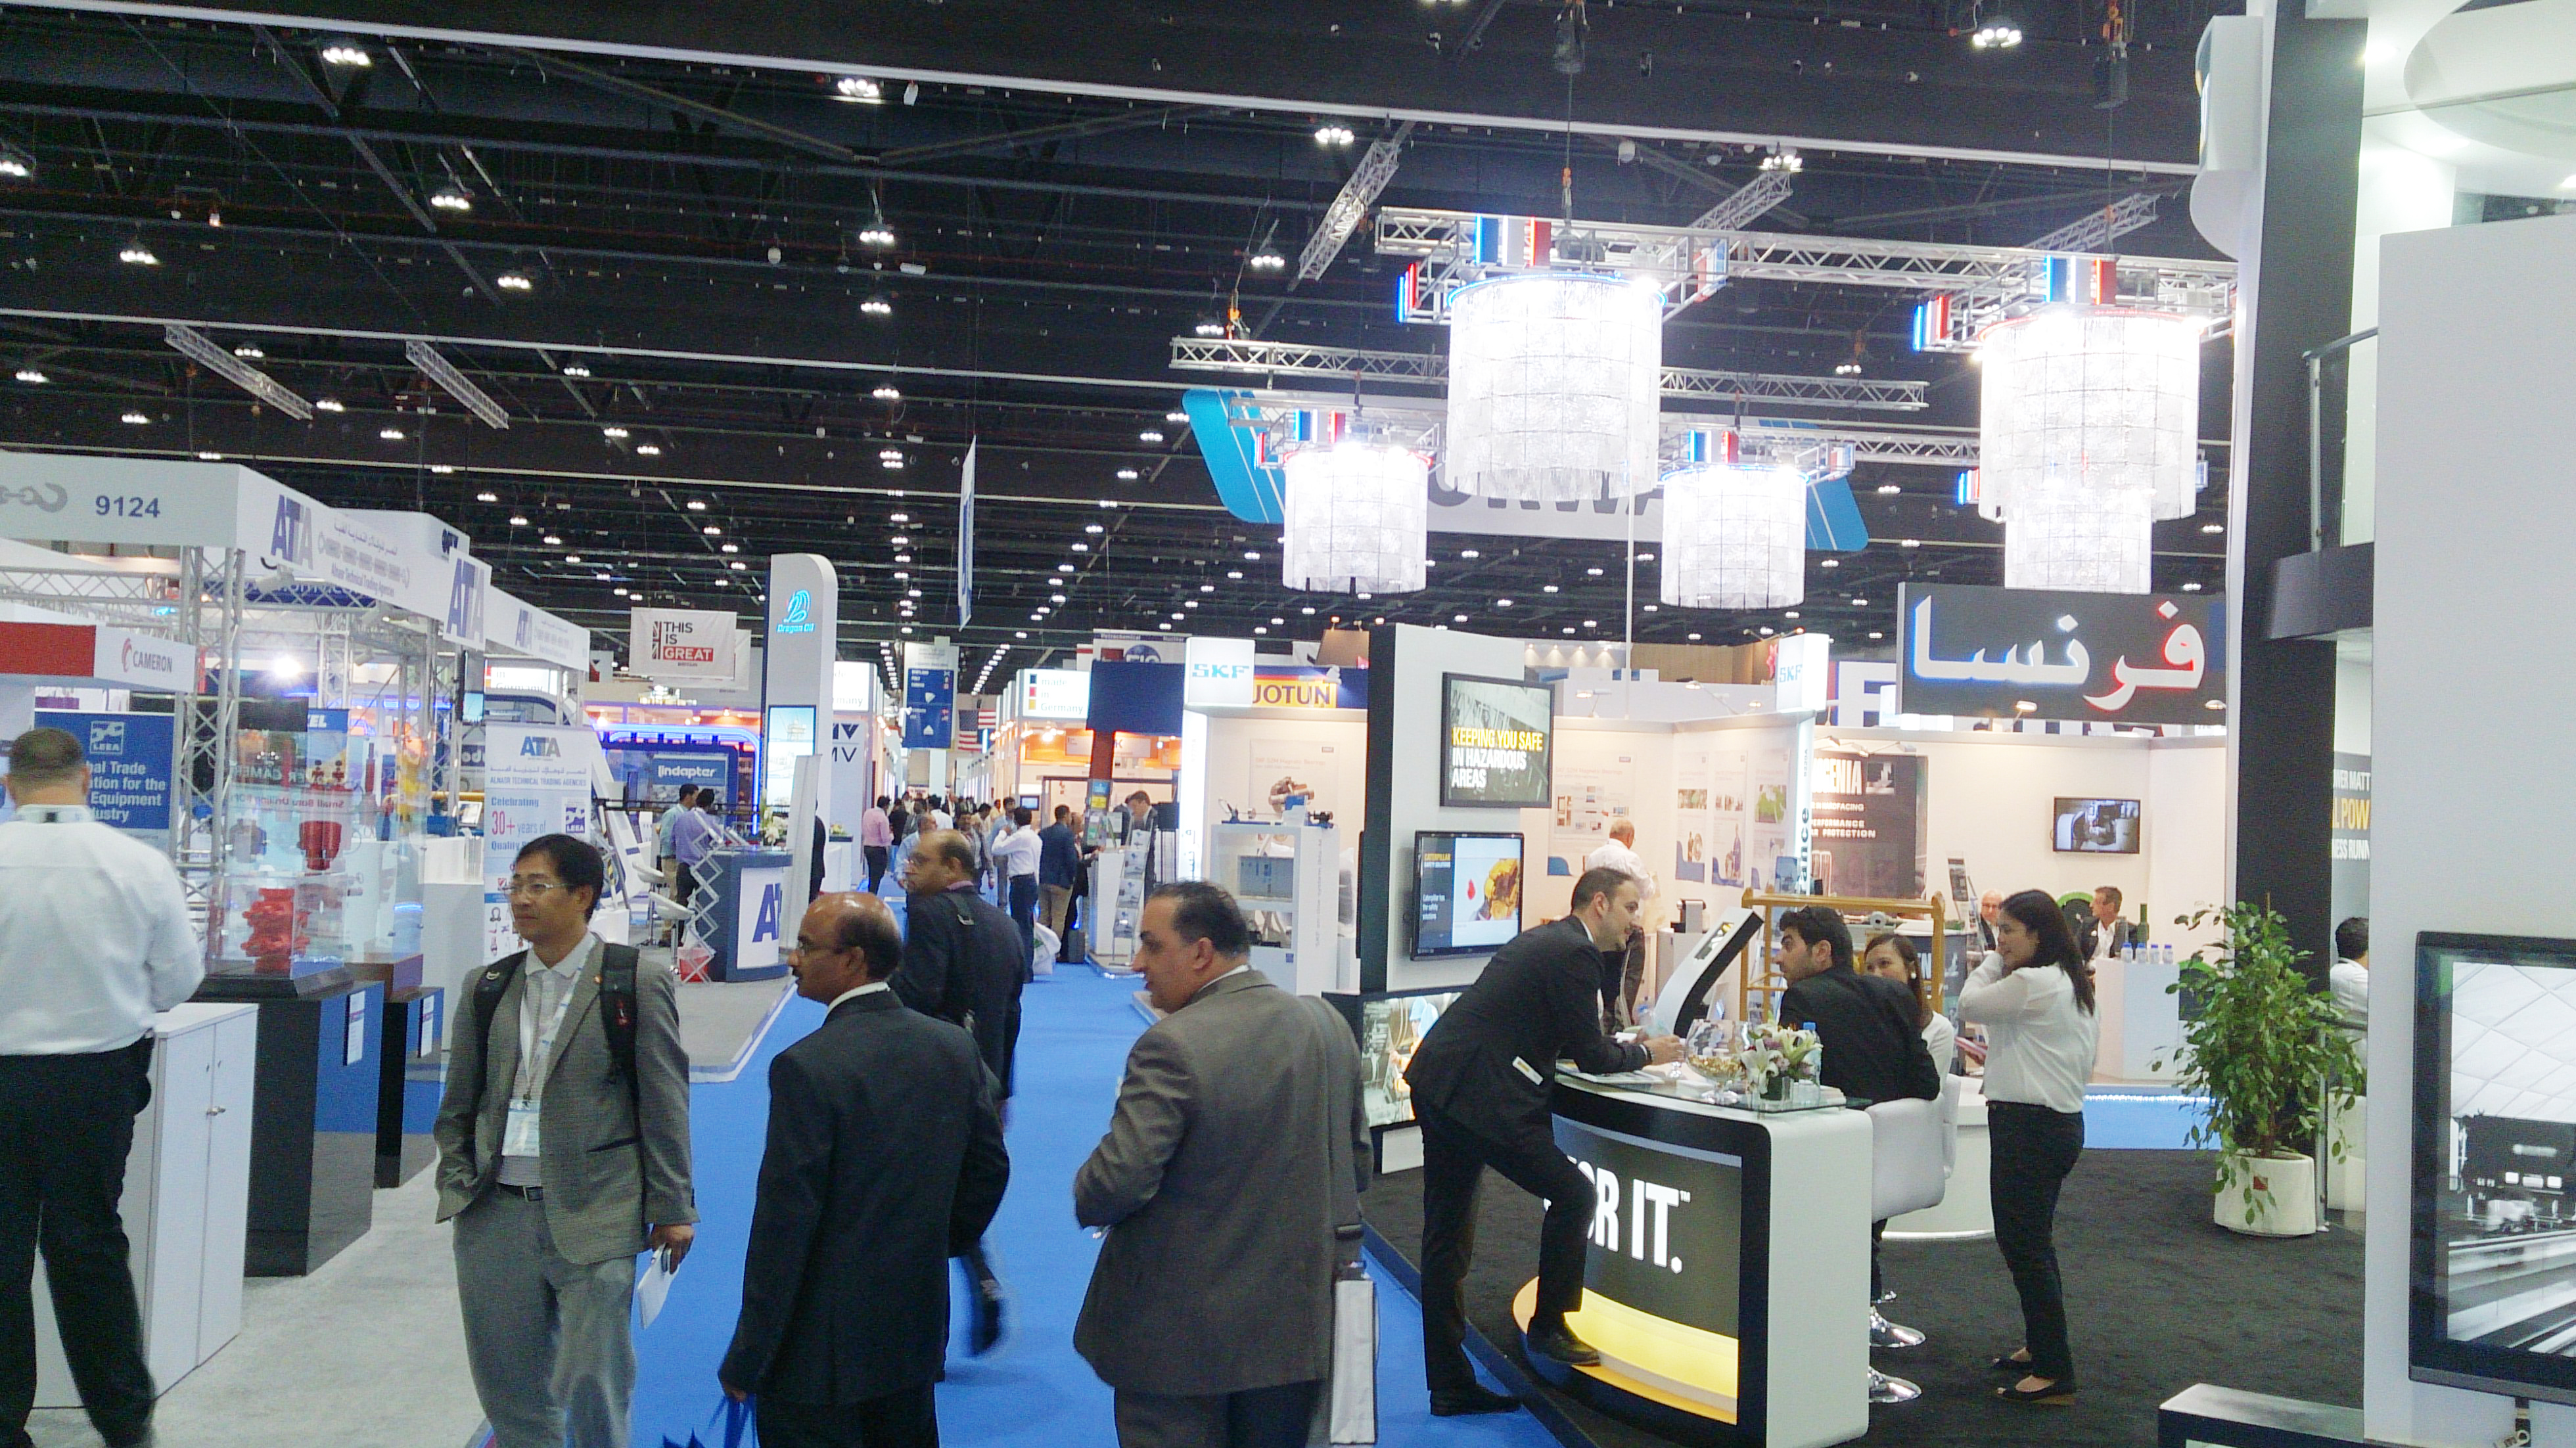 AT ADIPEC EXHIBITION